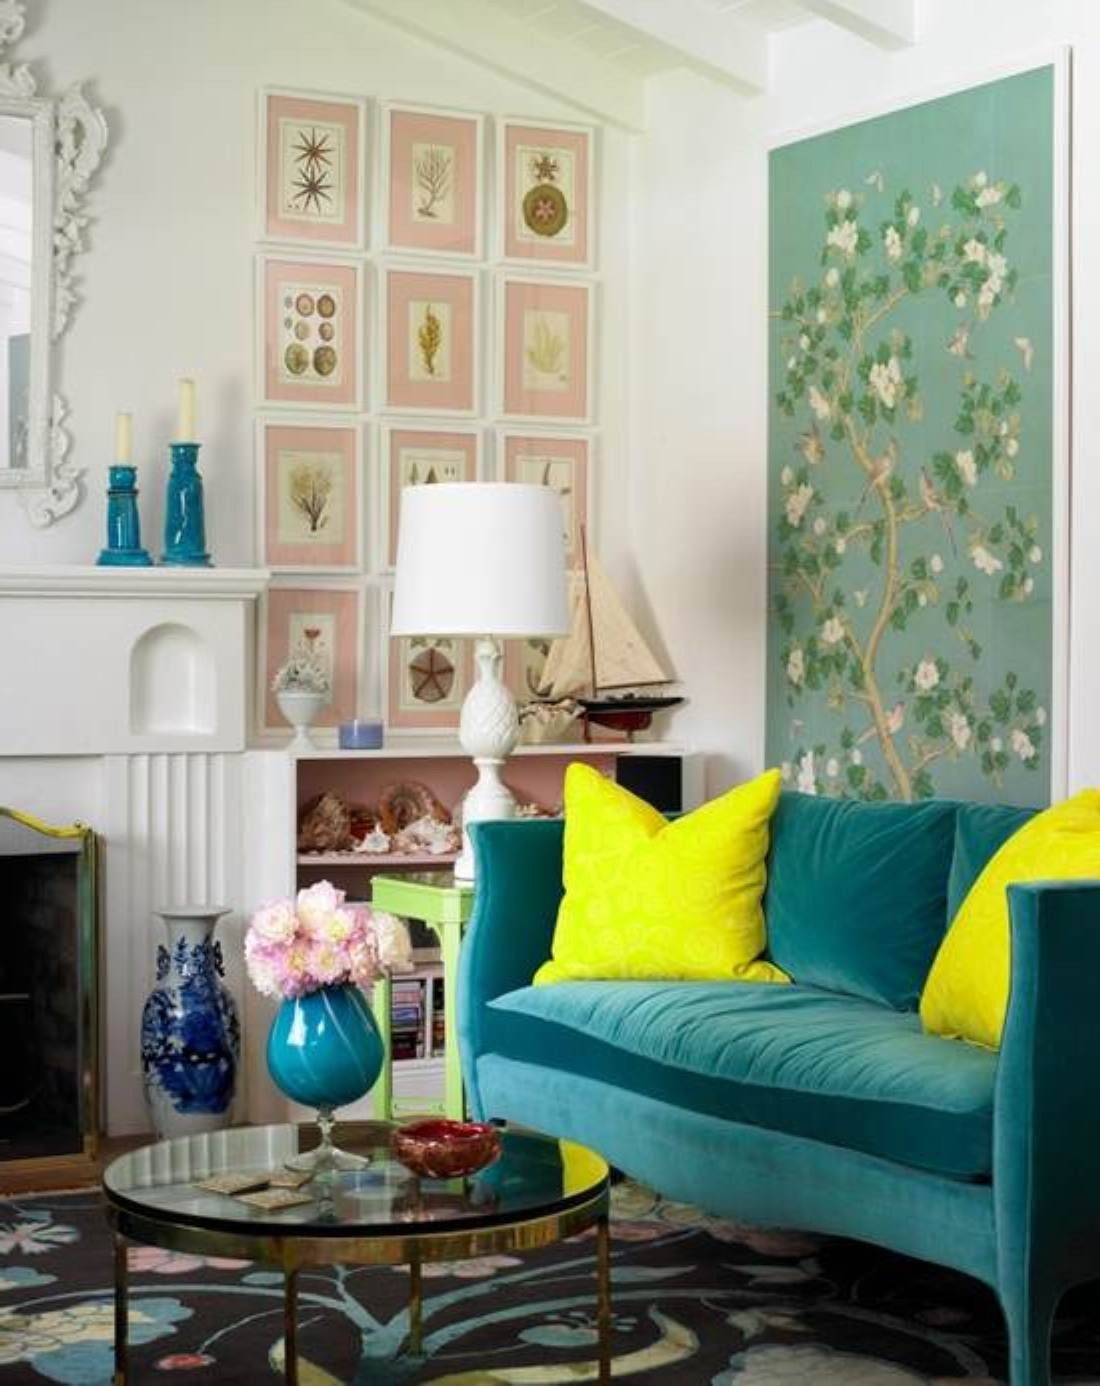 Living Room Design for Small Spaces 30 Amazing Small Spaces Living Room Design Ideas